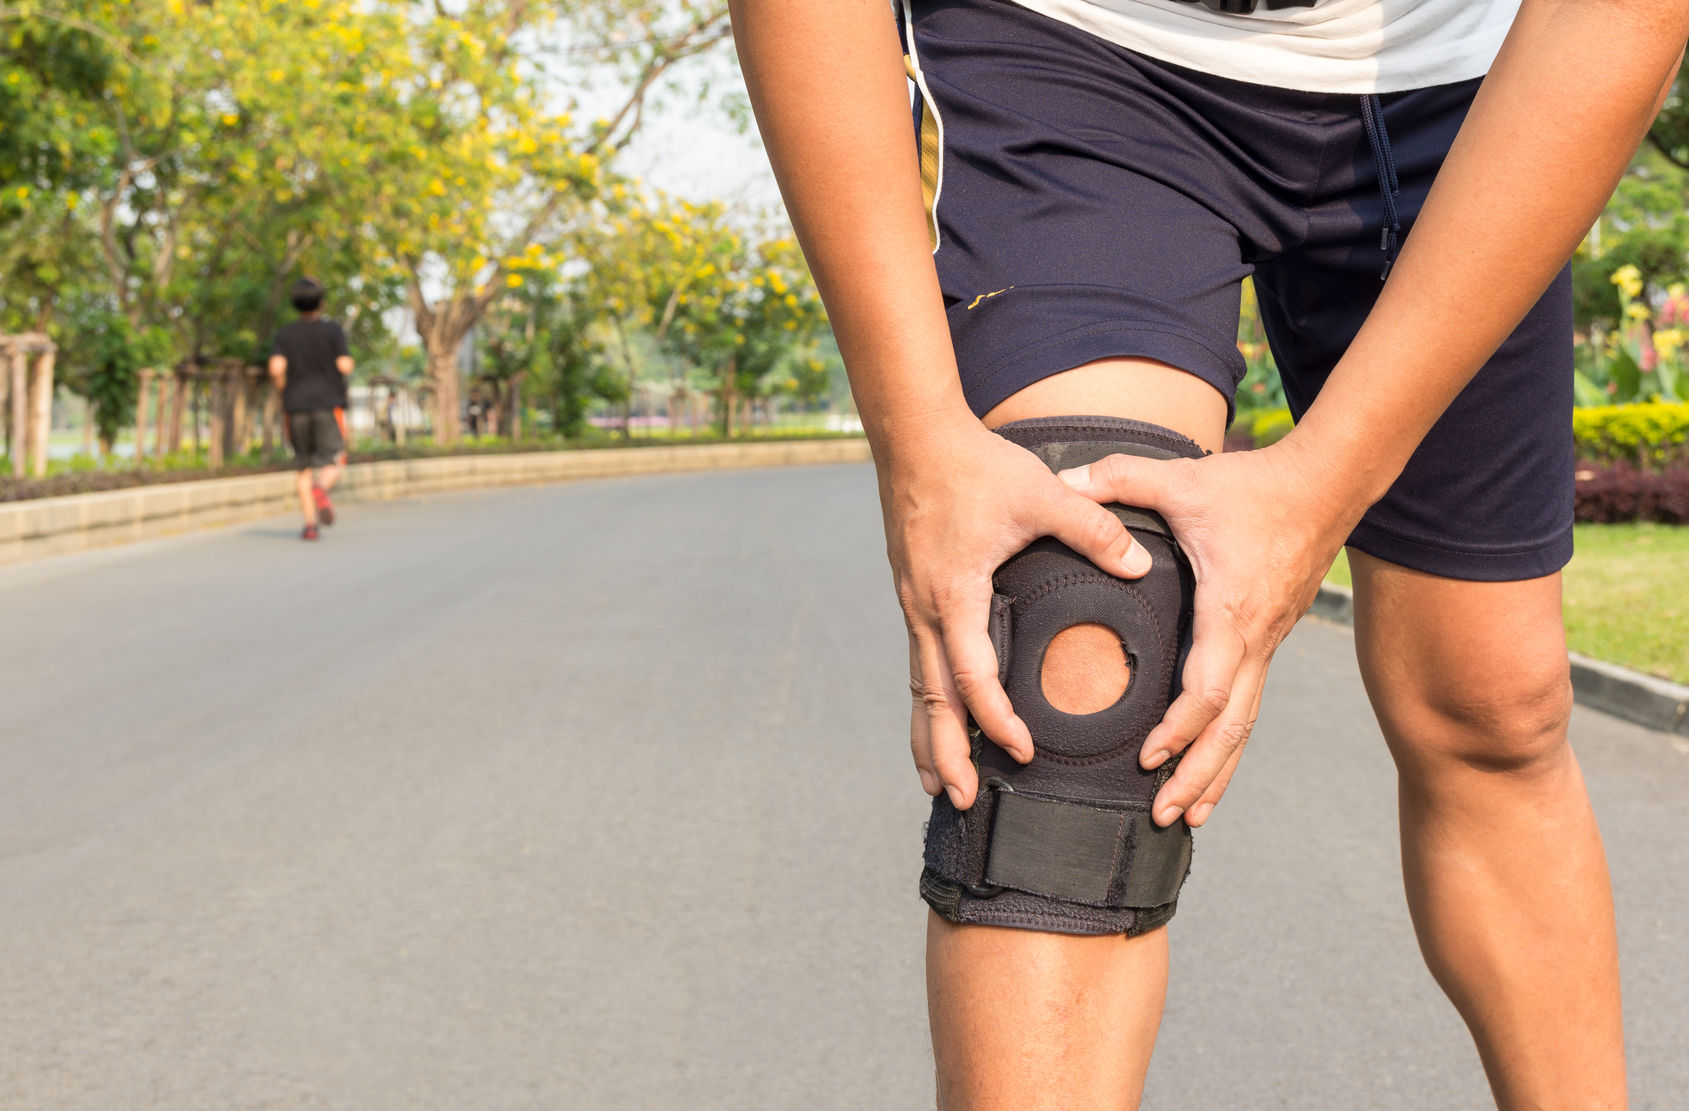 Tired of Suffering with Knee Pain?